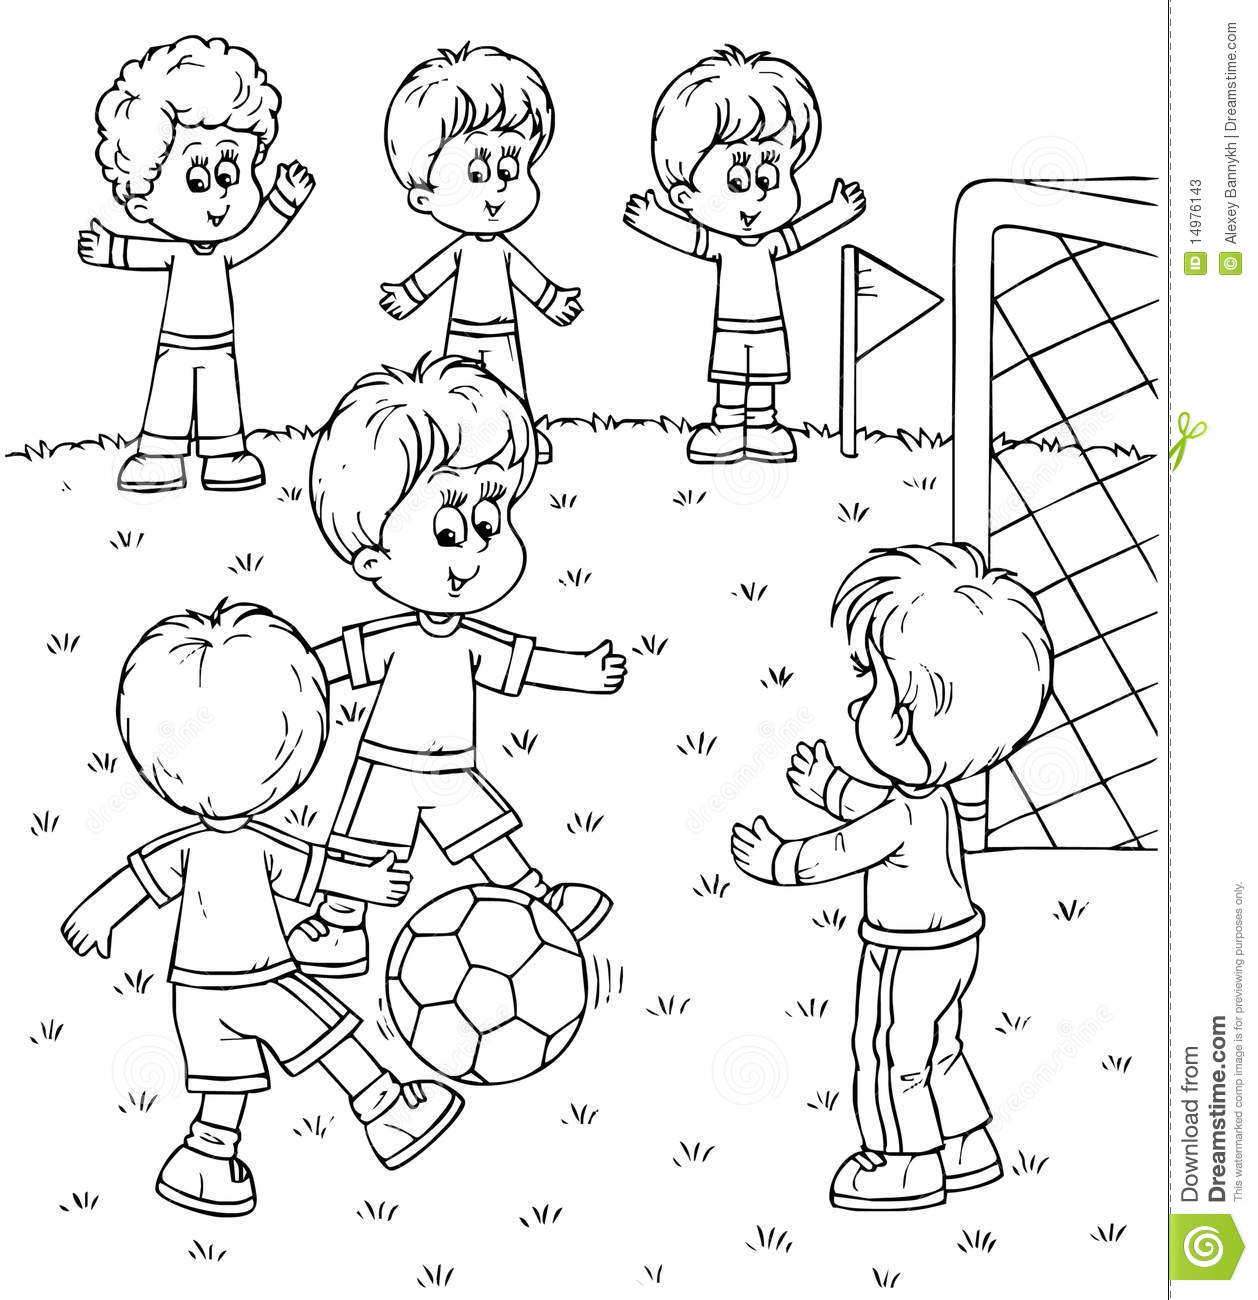 Feilds clipart countryside Children black players games white